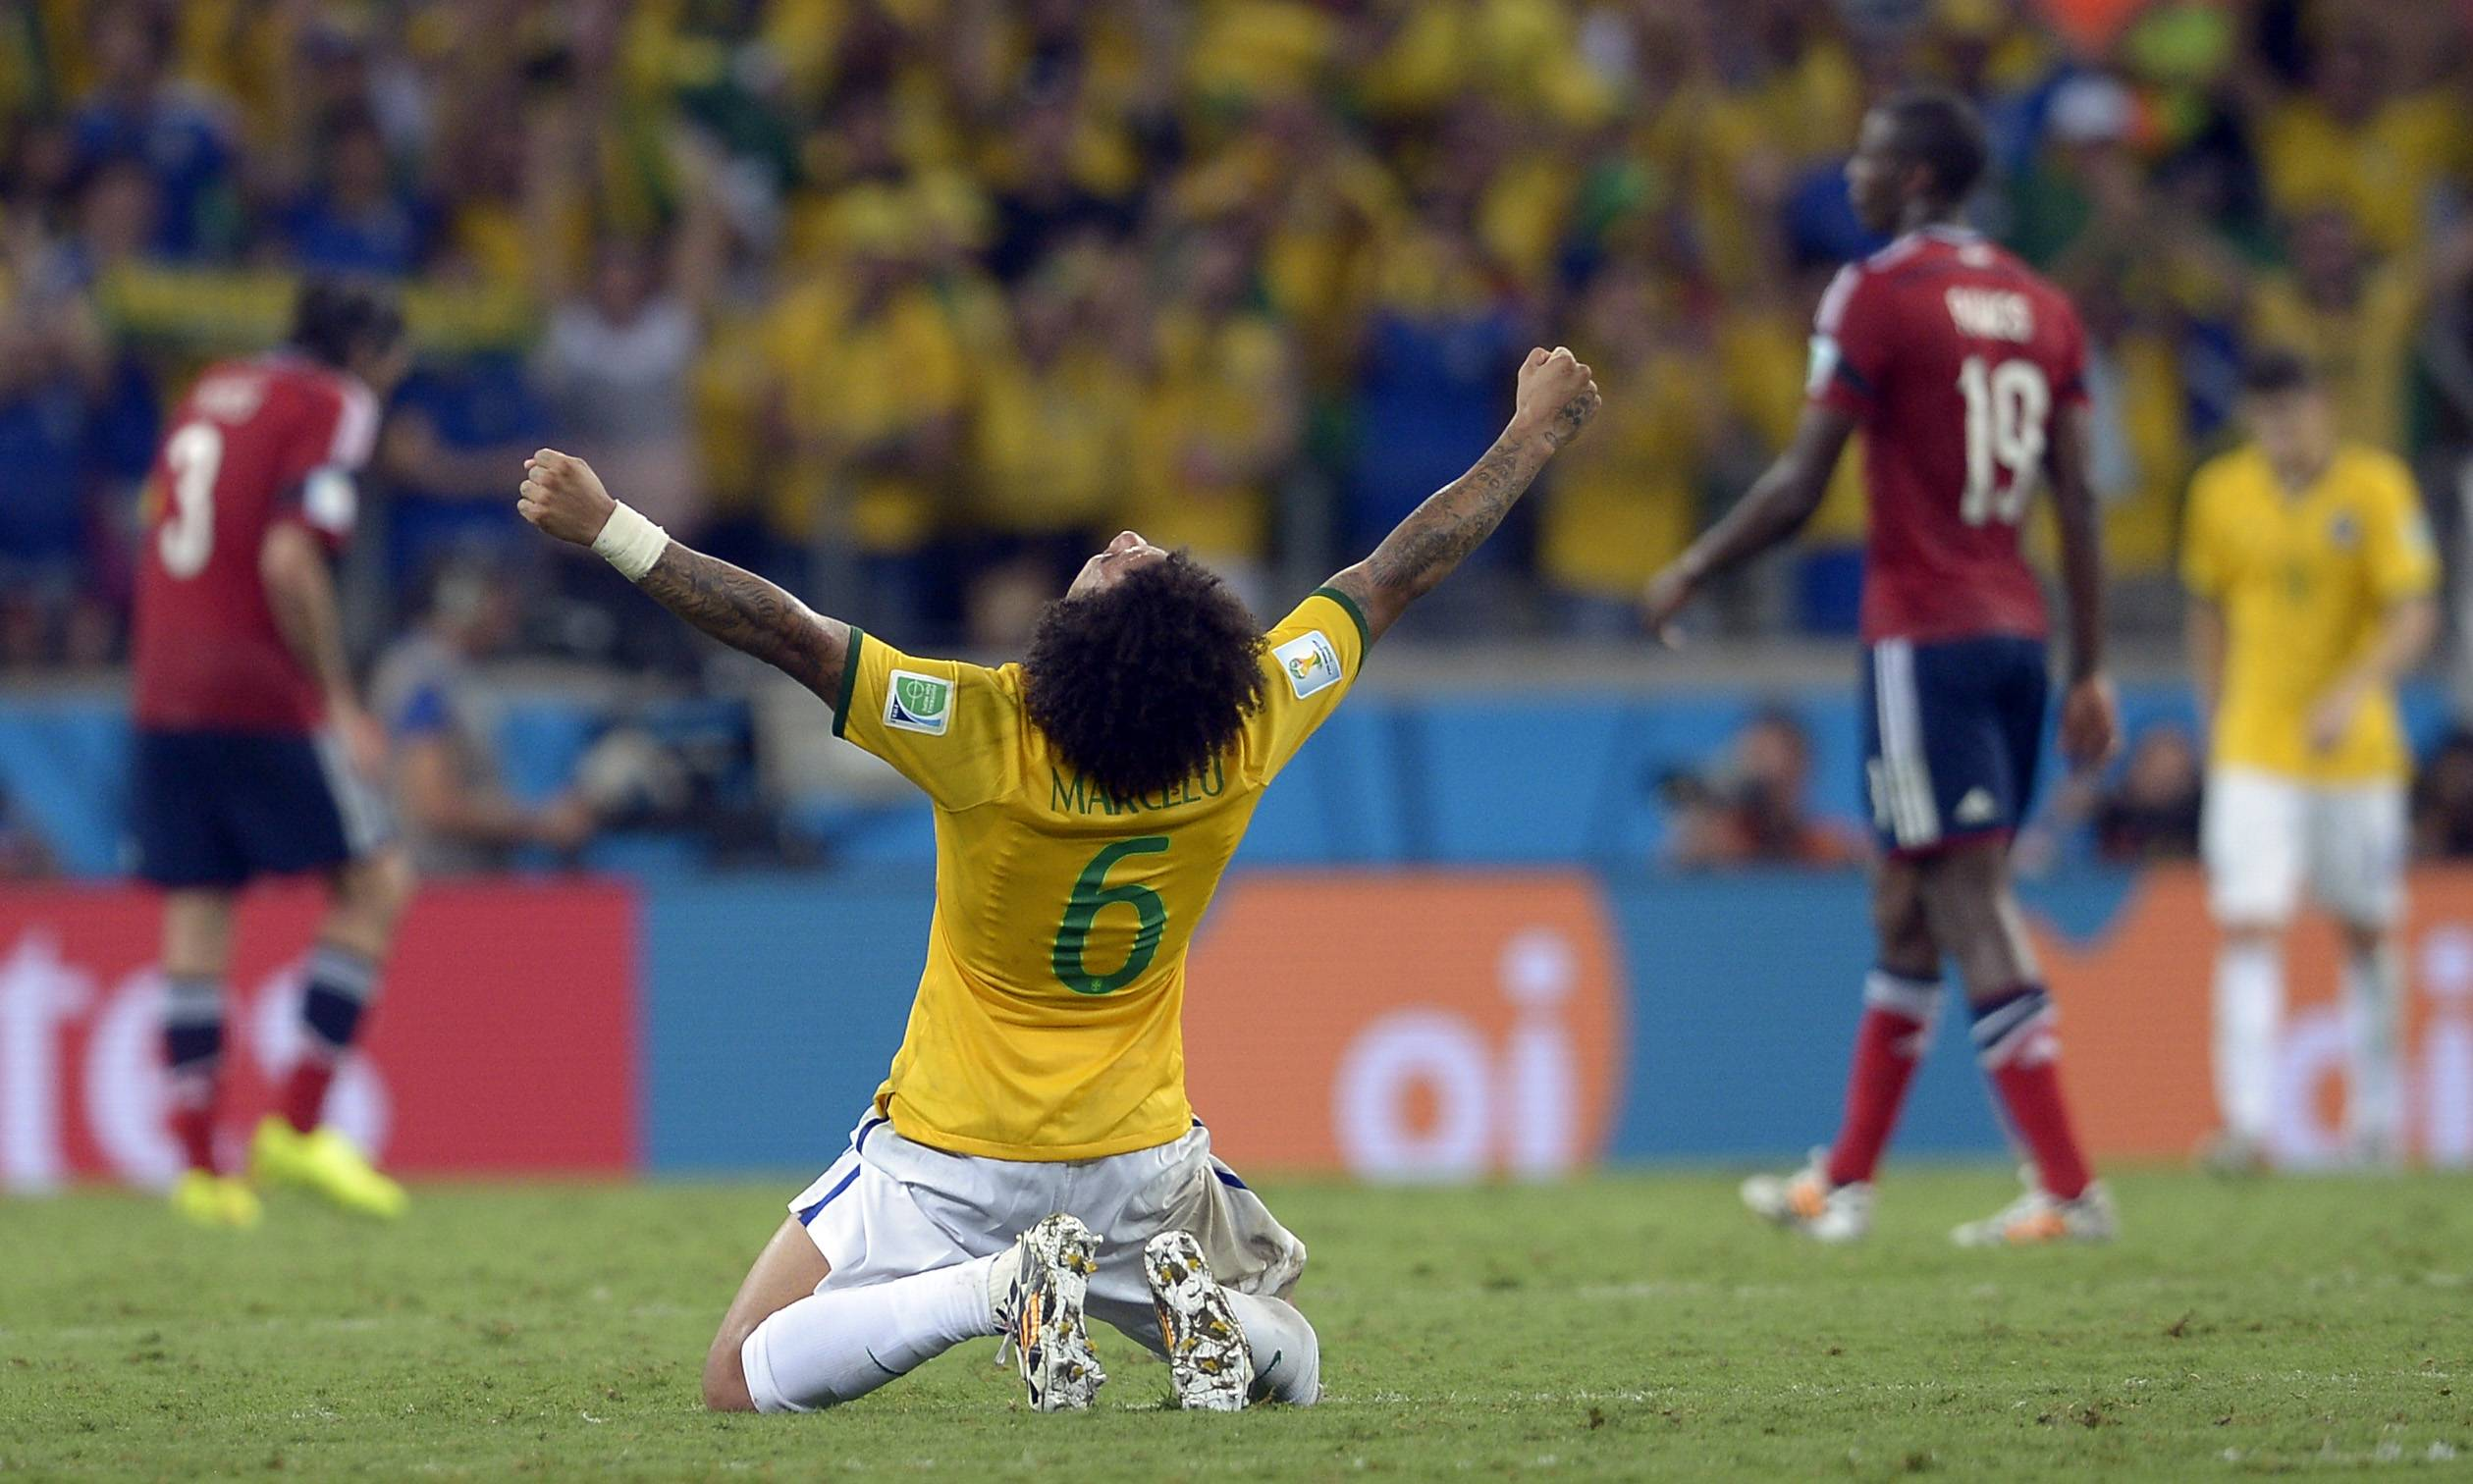 Brazil's Marcelo celebrates at the end of the World Cup quarterfinal soccer match between Brazil and Colombia at the Arena Castelao in Fortaleza, Brazil, Friday, July 4, 2014. Brazil won the match 2-1.